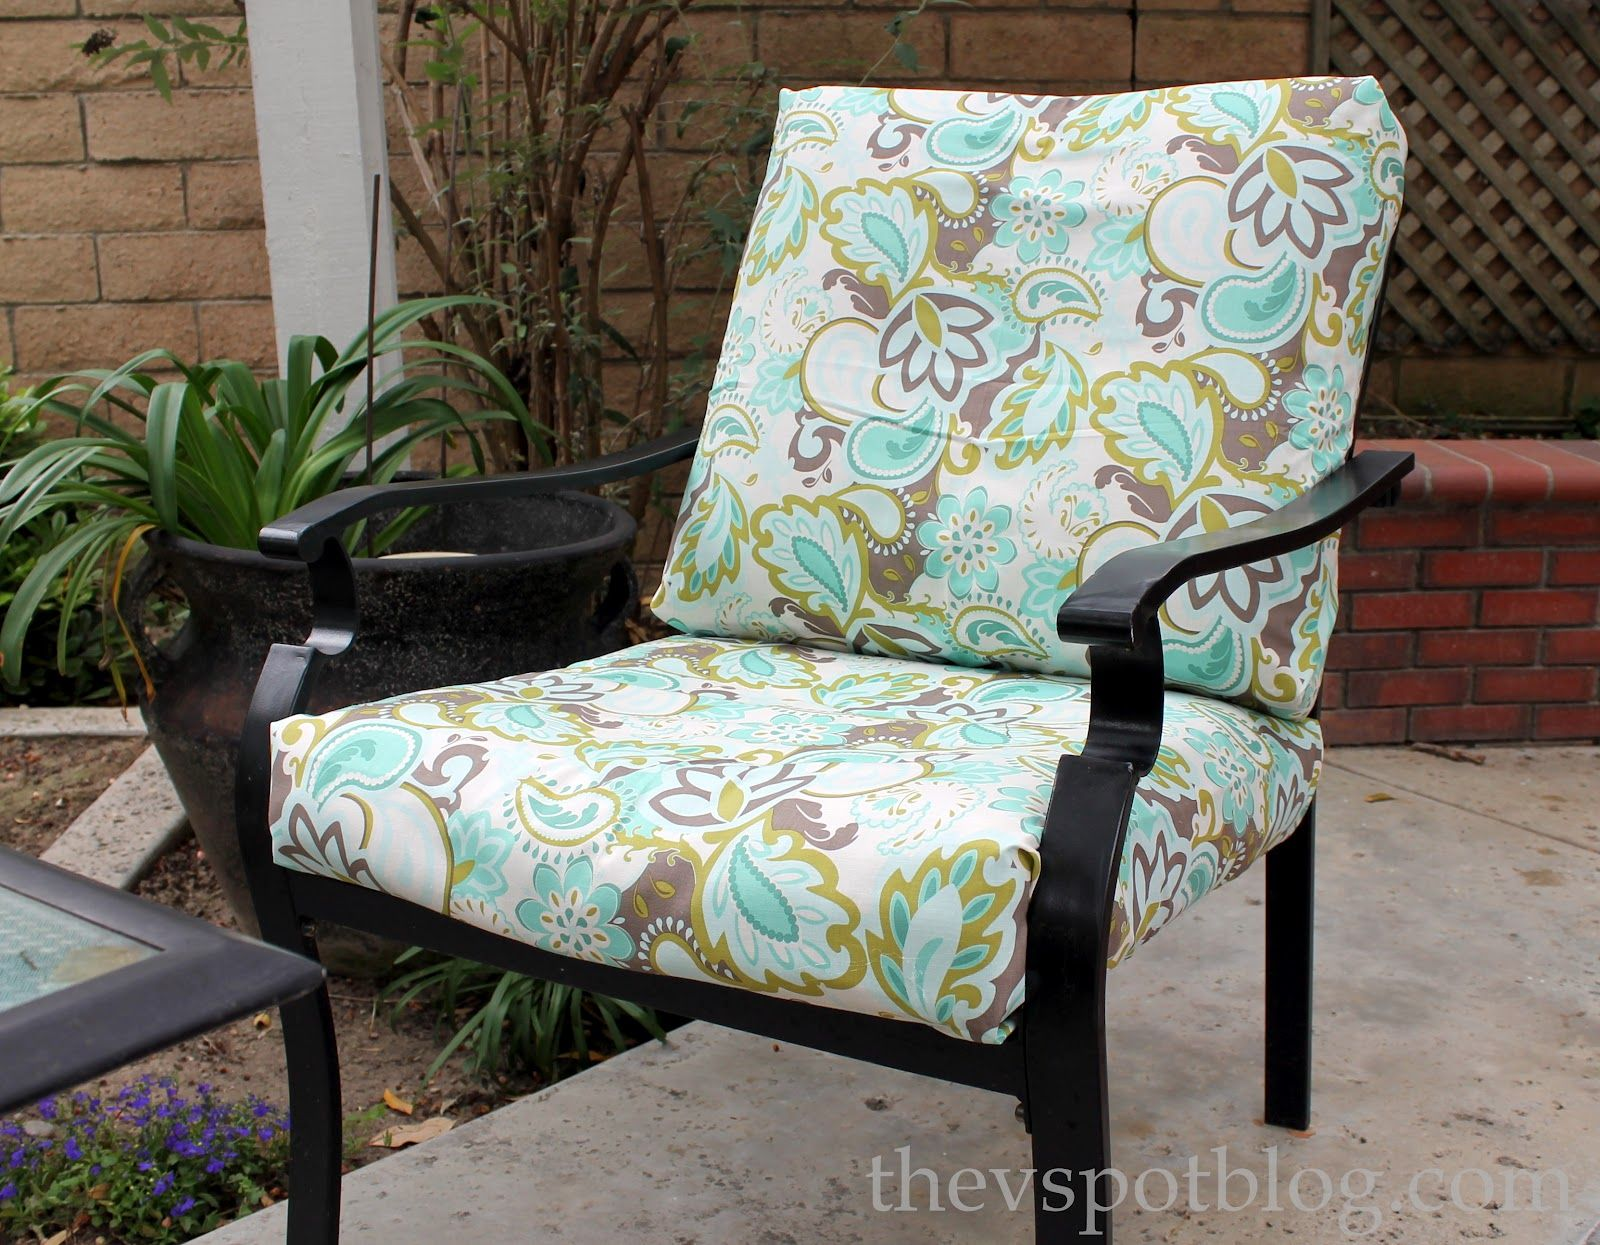 Sewing Patterns For Patio Chair Cushions Fishing Tackle No Sew Project How To Recover Your Outdoor Using Fabric And A Glue Gun The V Spot